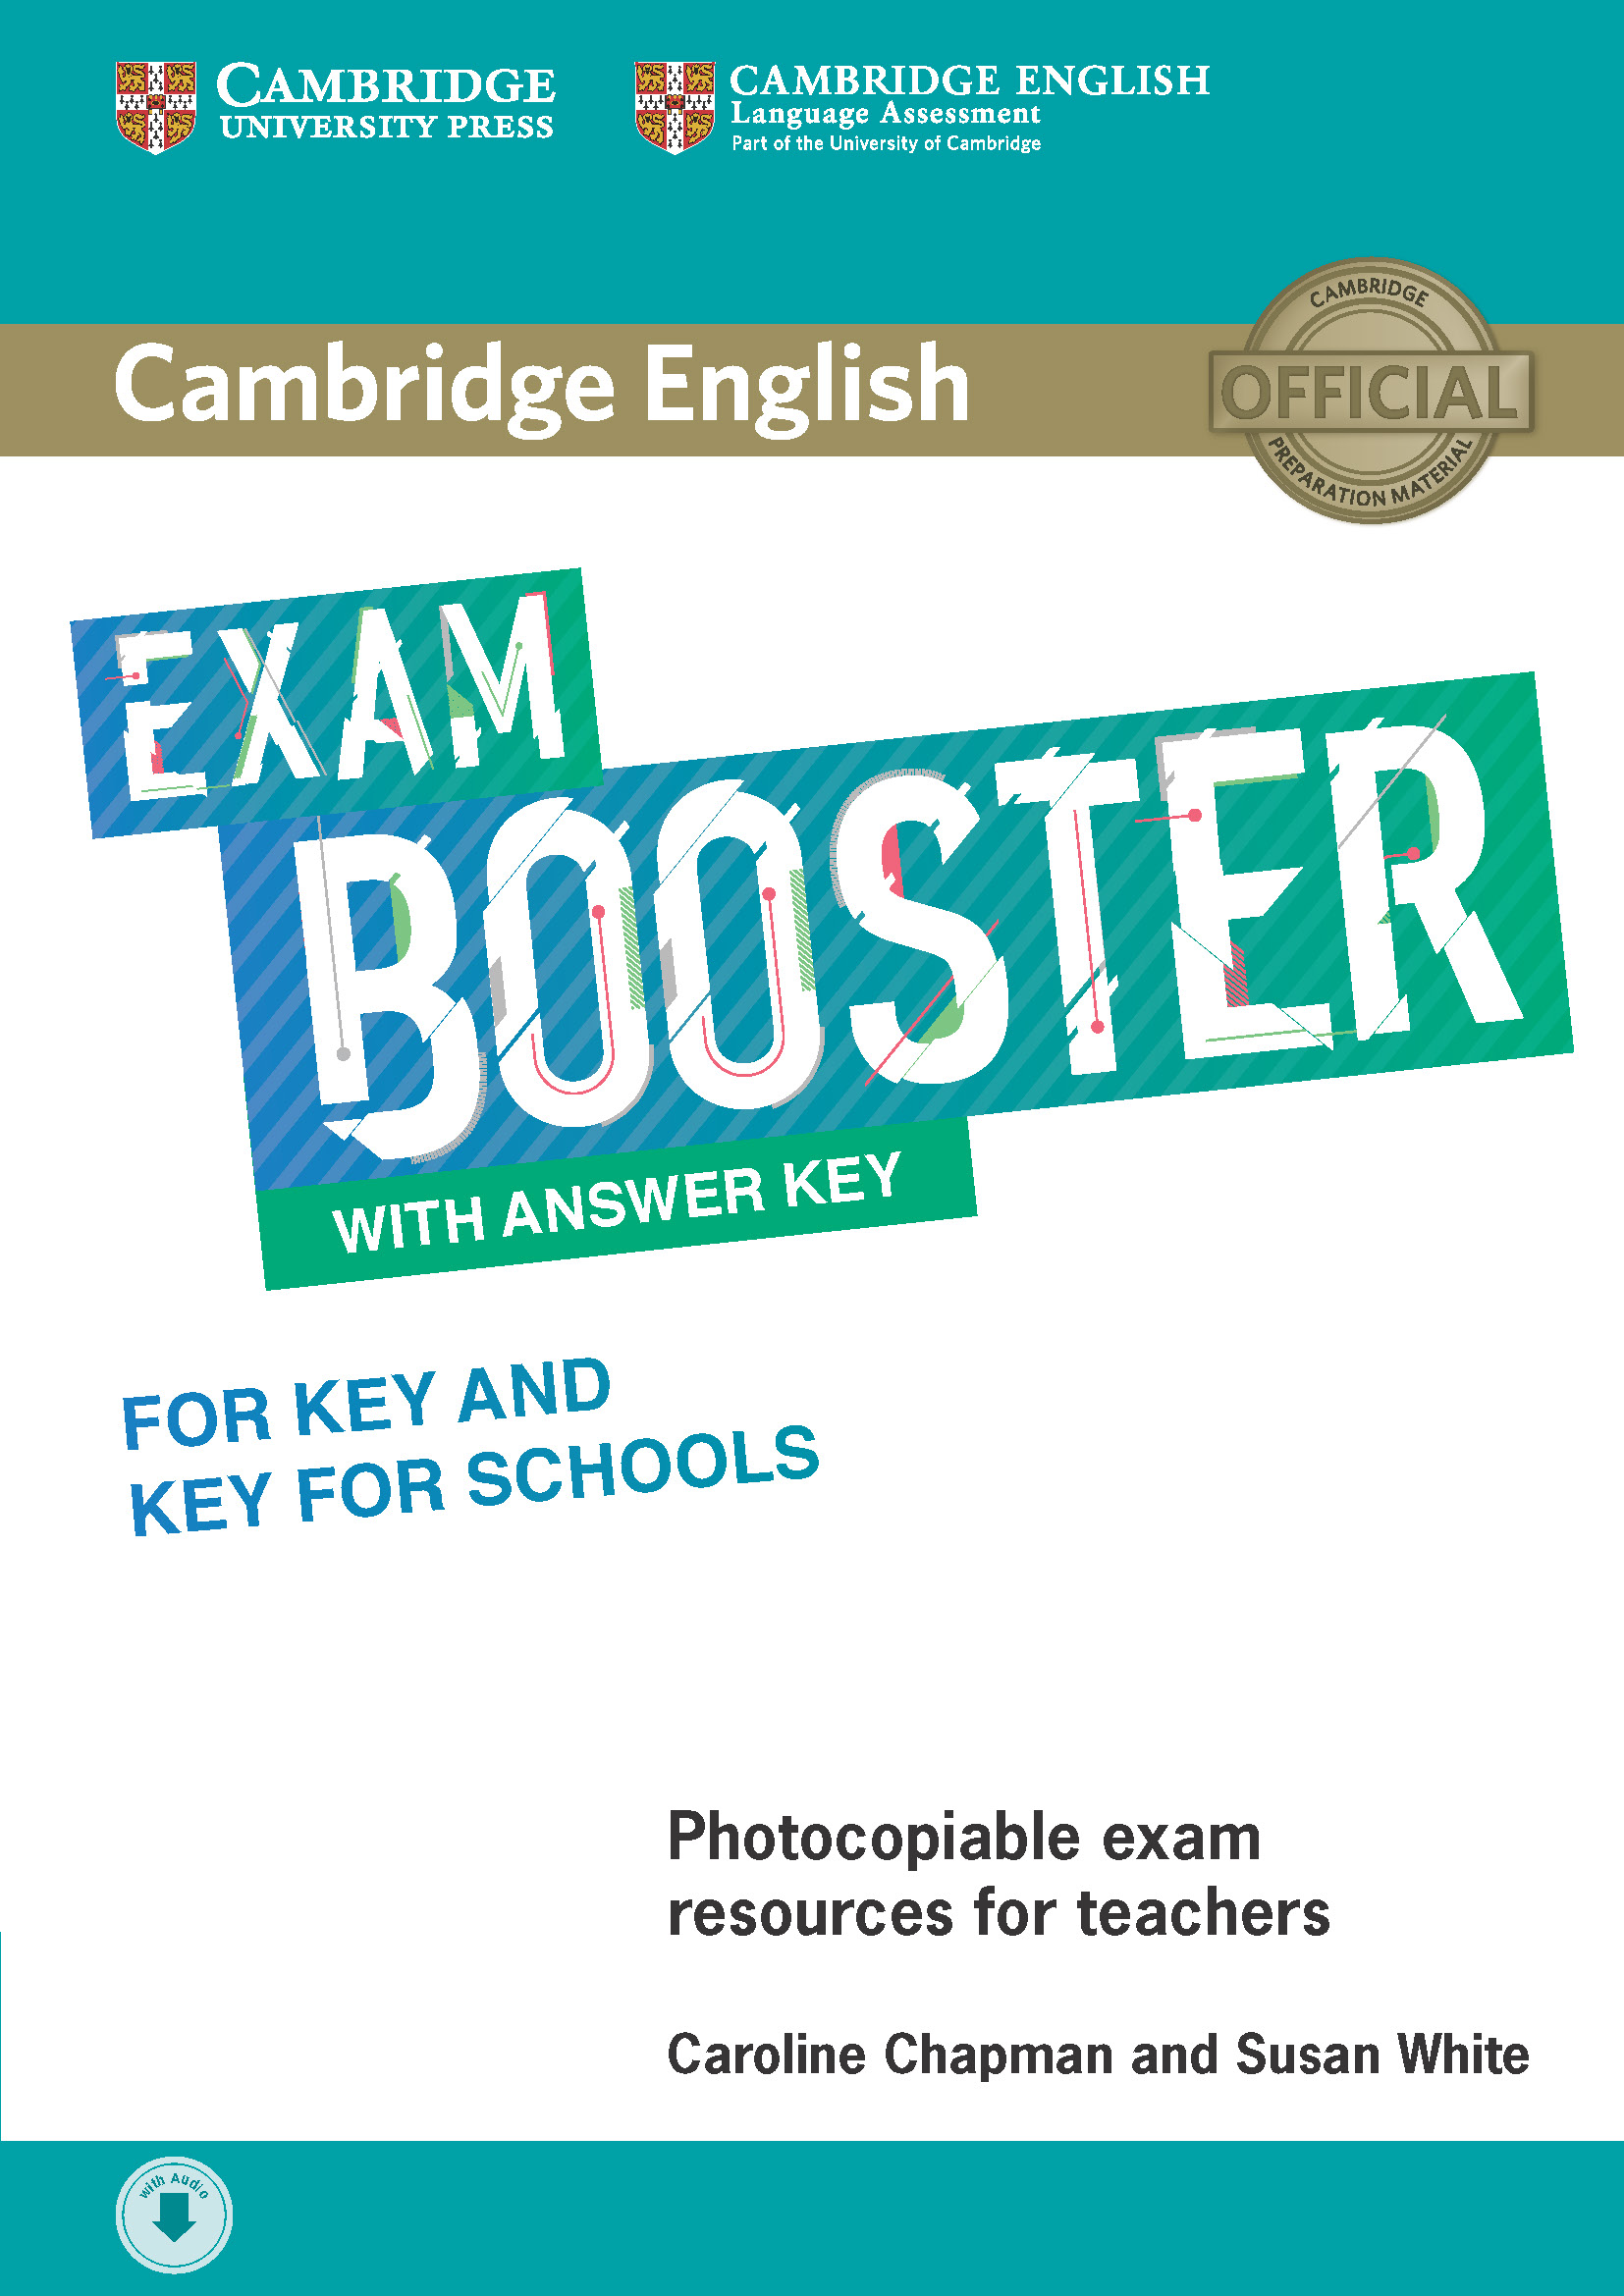 Exam booster_Key